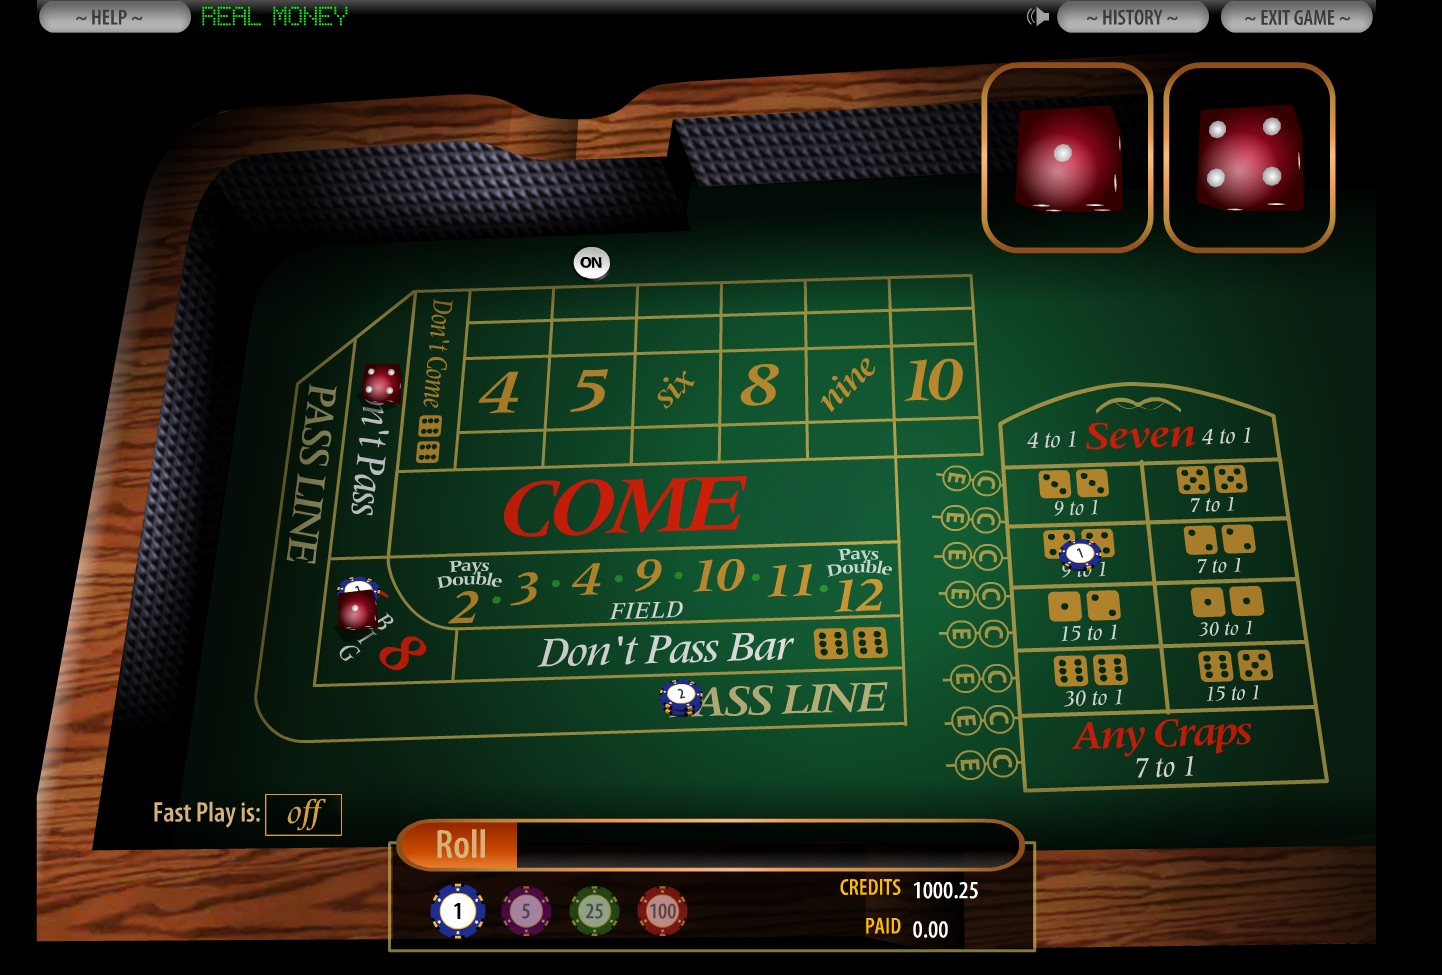 Casino.com - Play Online Casino Games at the Number One Casino Today